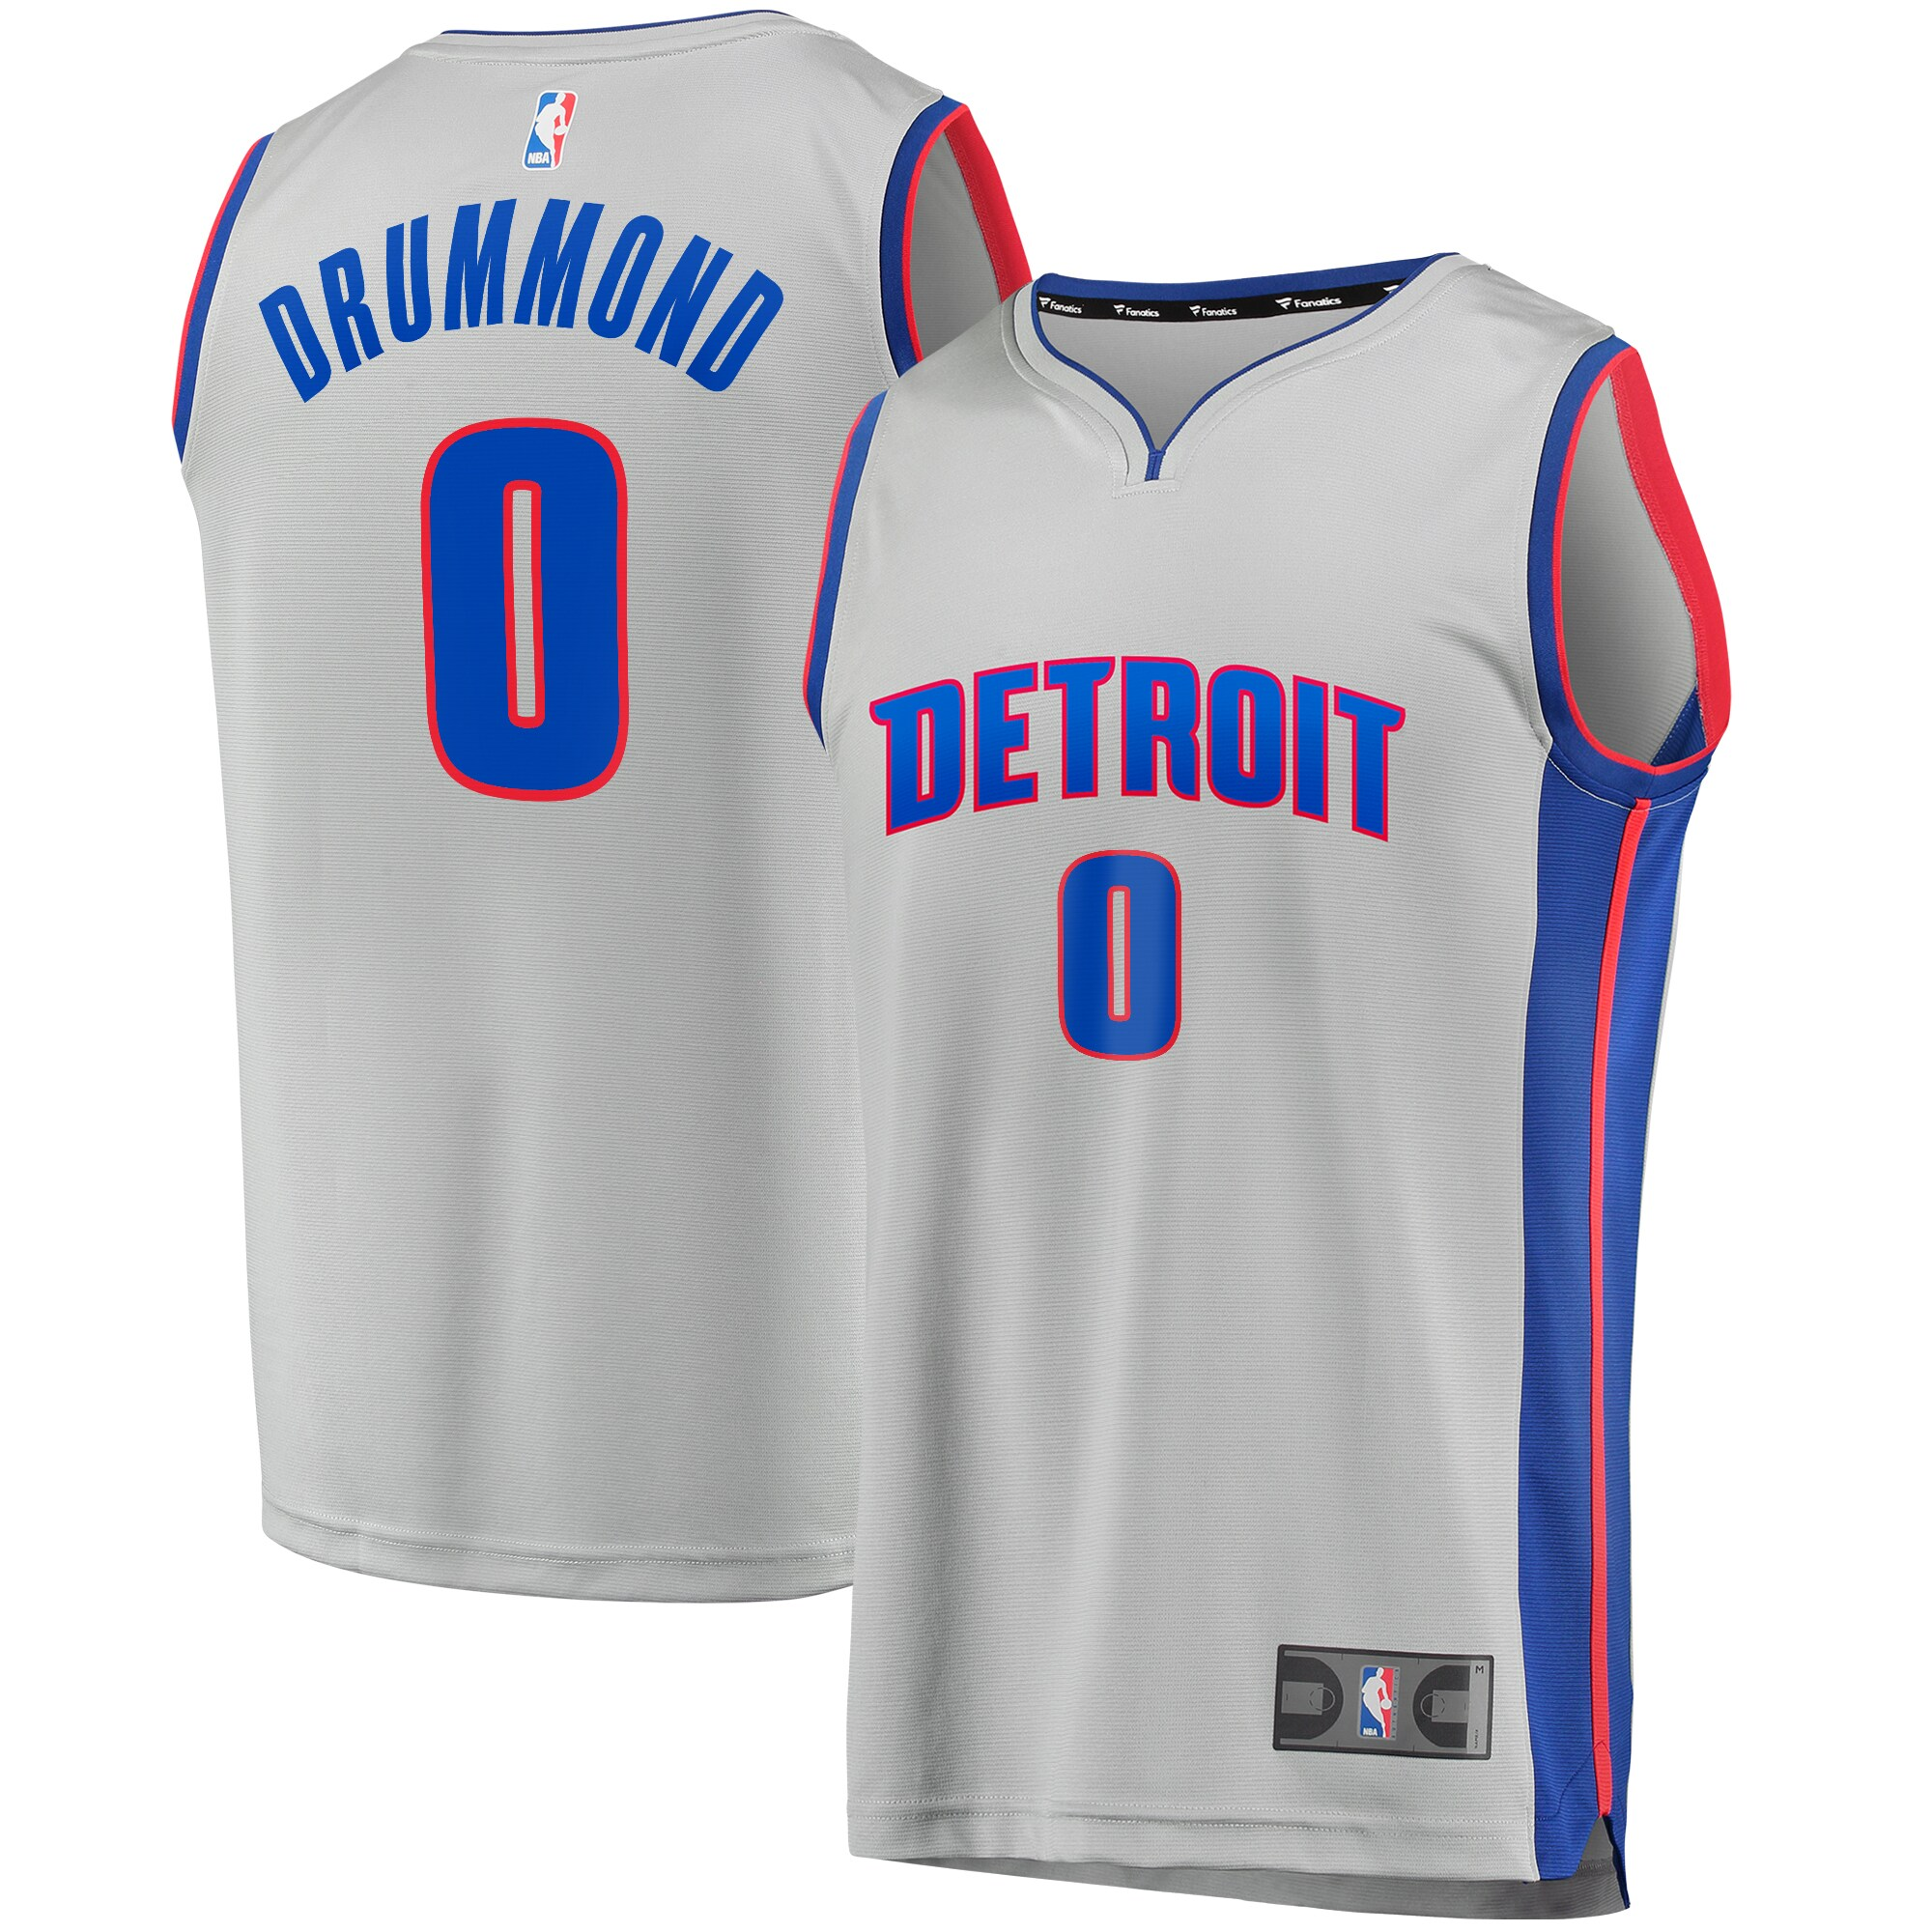 Andre Drummond Detroit Pistons Fanatics Branded Youth Fast Break Replica Player Jersey - Statement Edition - Gray